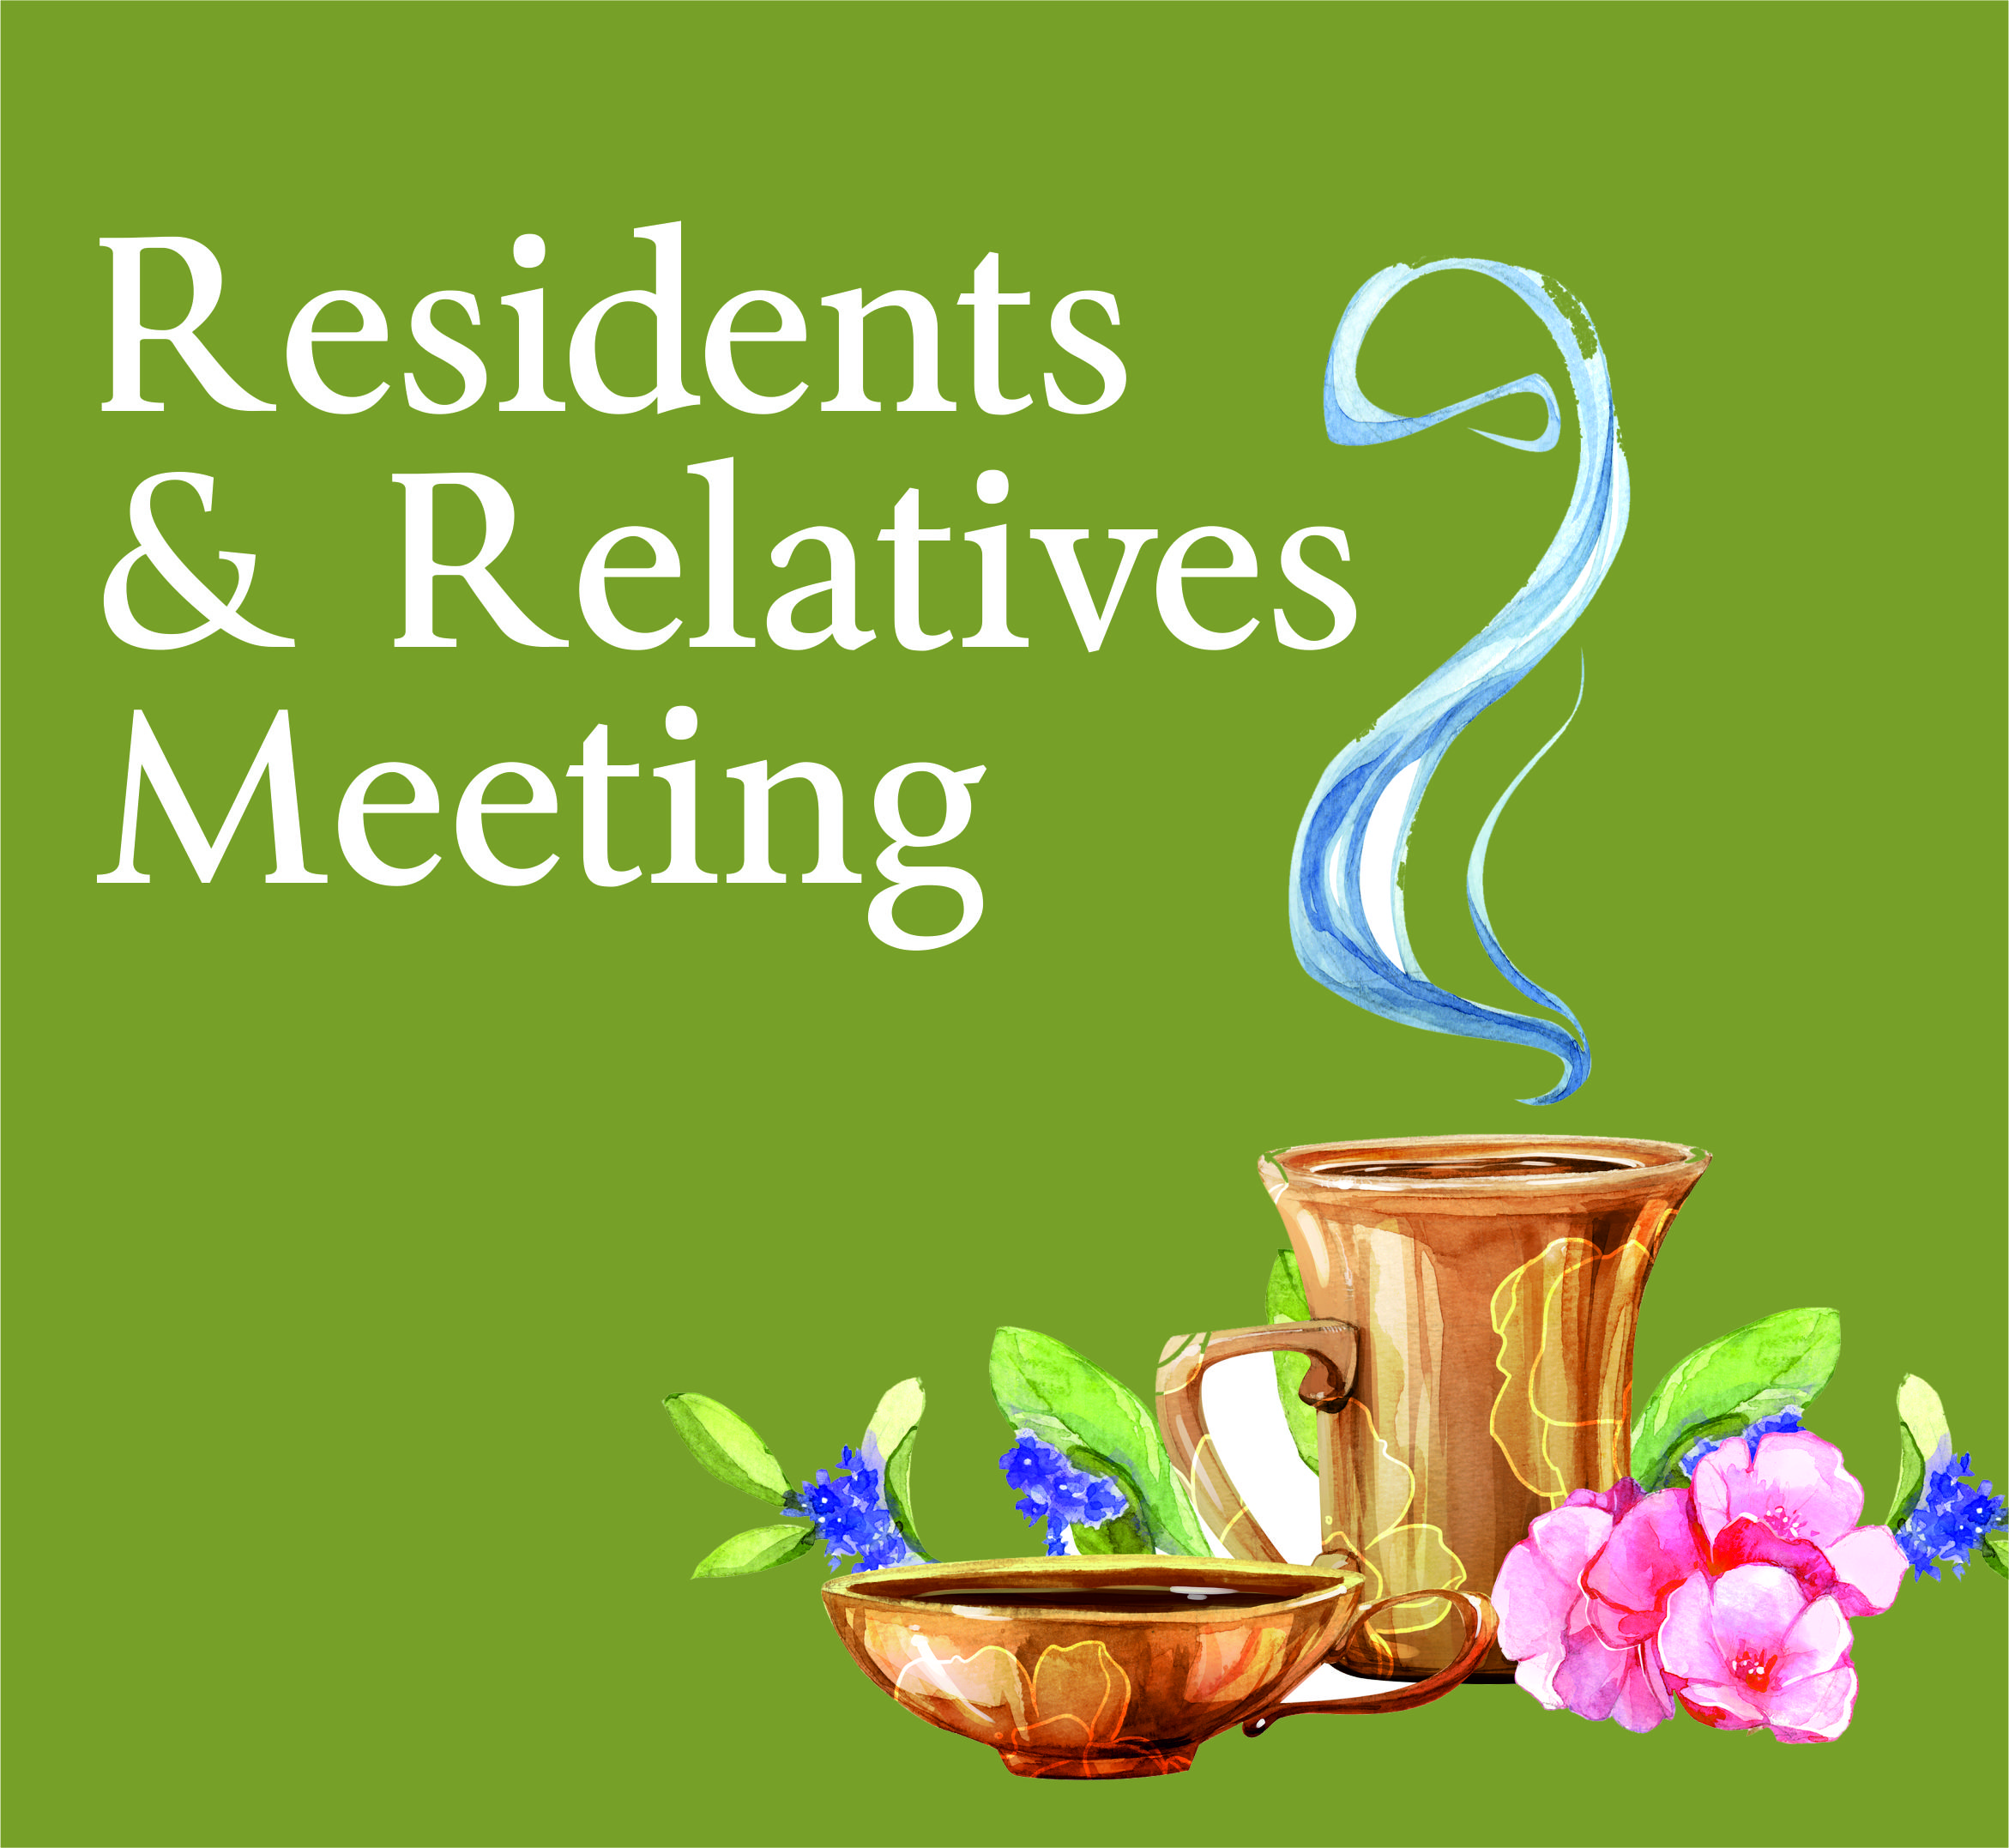 Events Template 2020 residents meeting WP